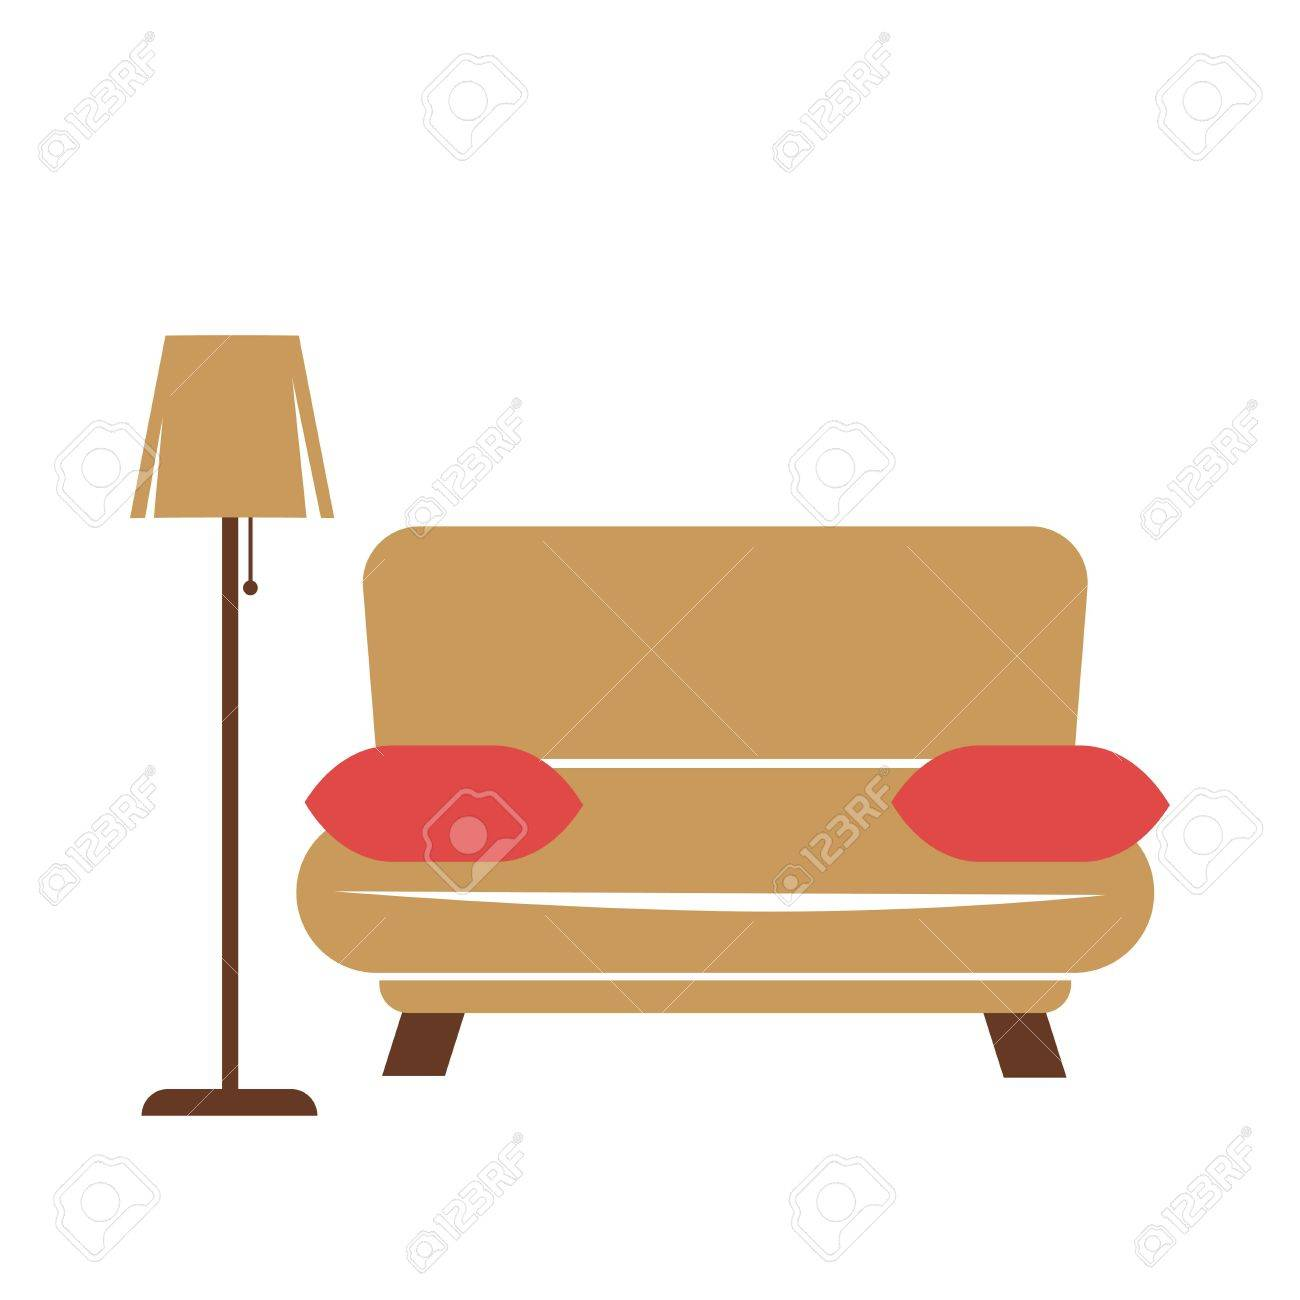 Wondrous Vector Illustration Of A Brown Couch With Standard Lamp And Red Andrewgaddart Wooden Chair Designs For Living Room Andrewgaddartcom